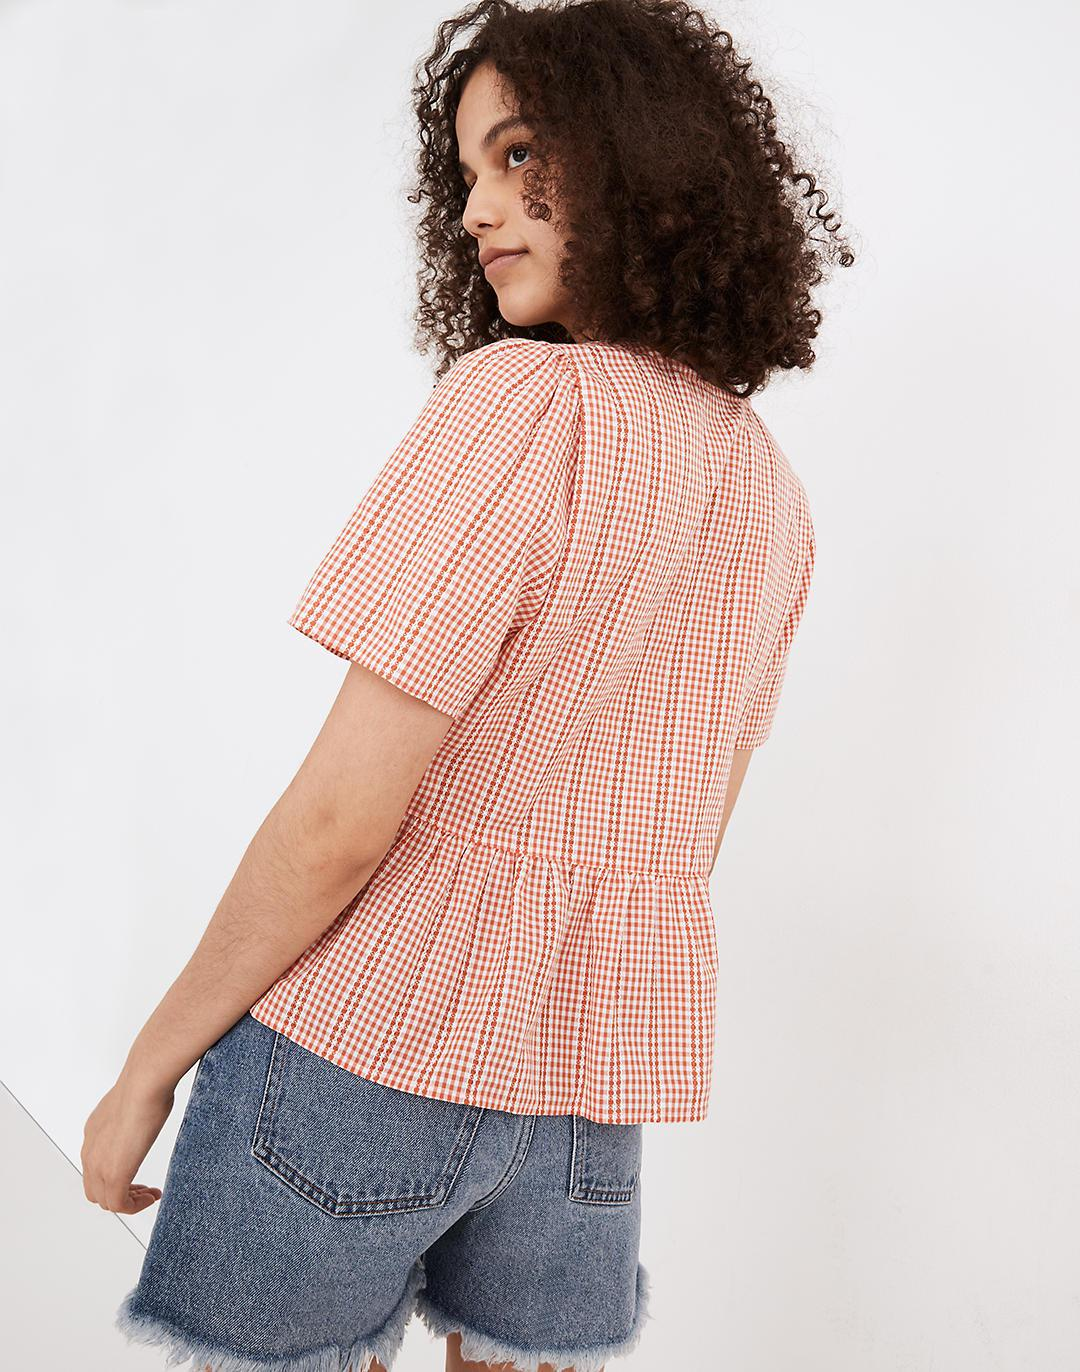 Crossover Peplum Top in Textured Gingham Check 2